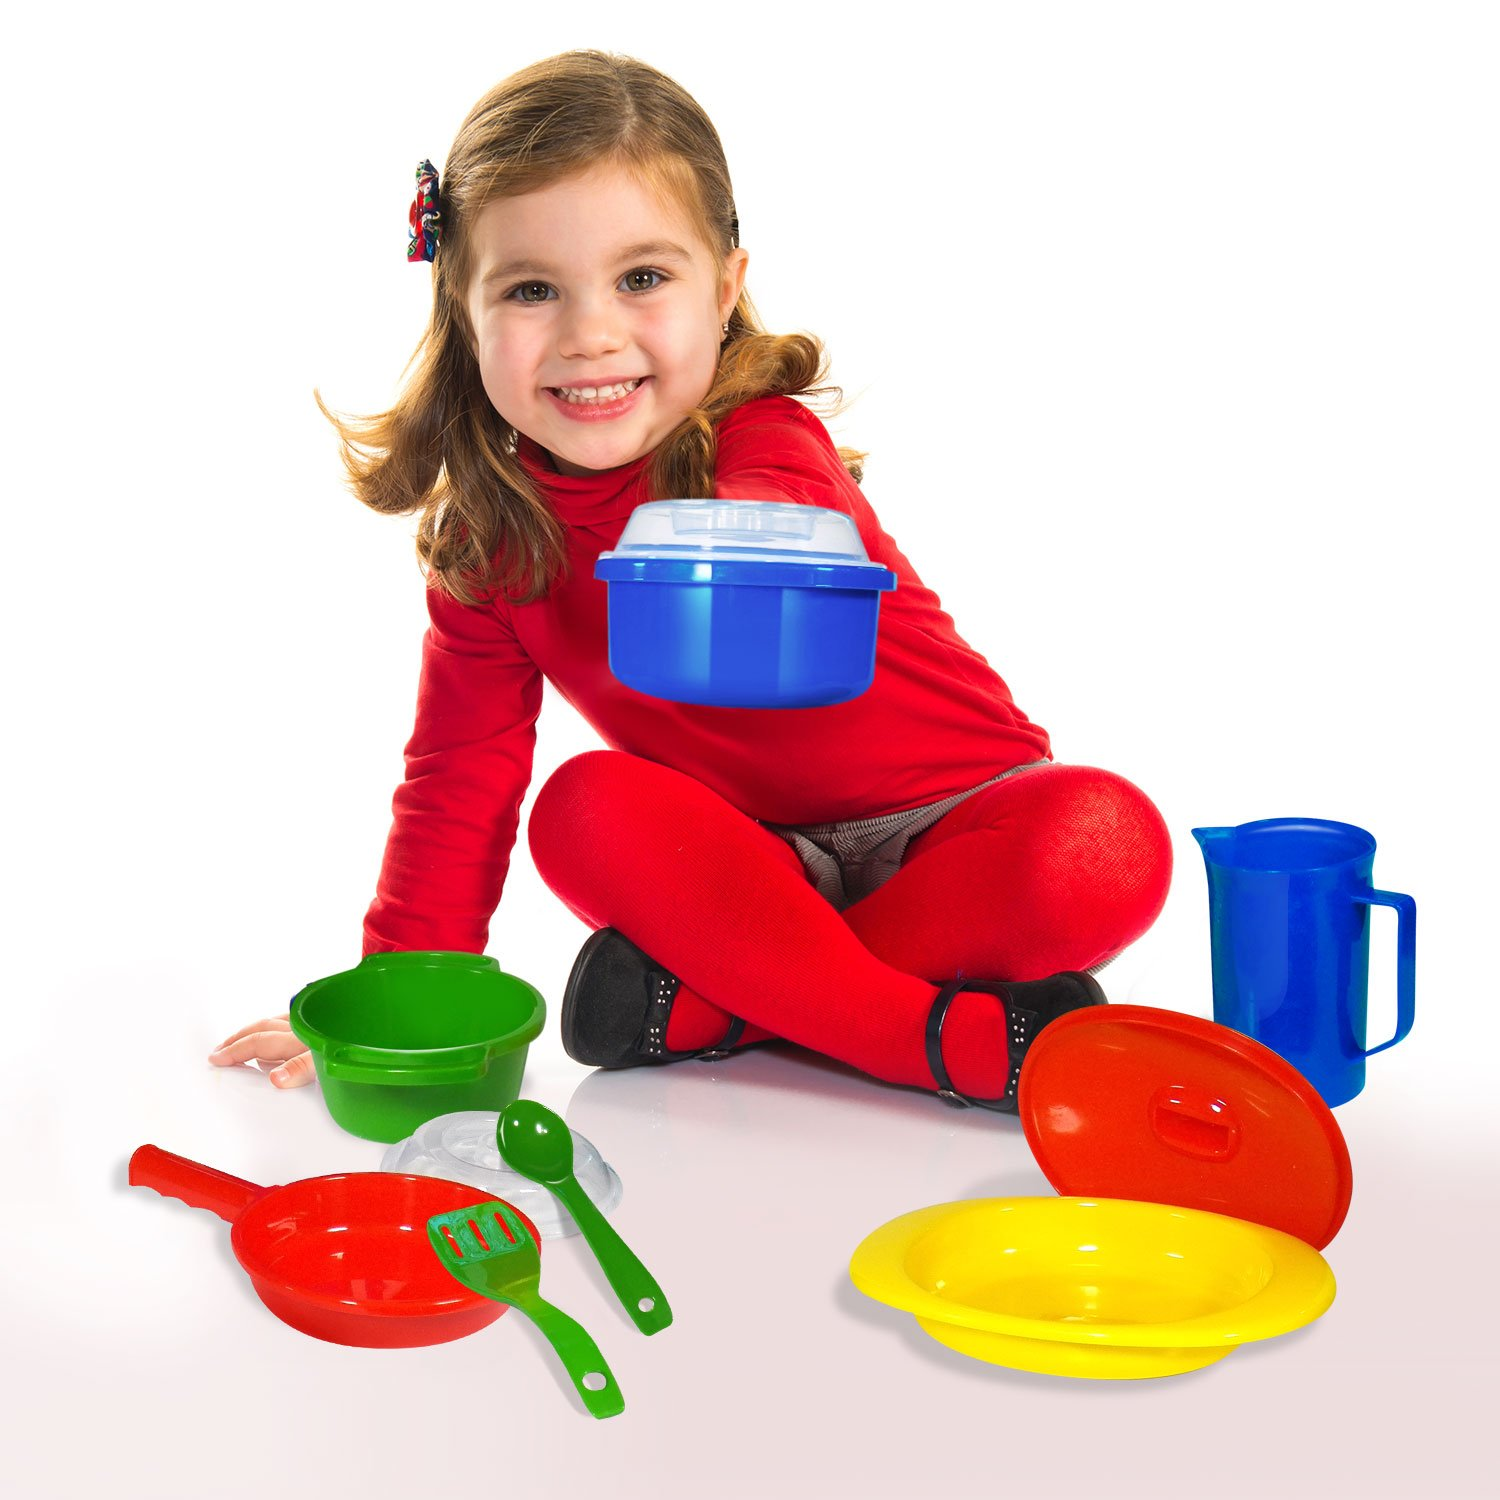 Amazon Kidzlane Toy Pots and Pans Kitchen Accessories